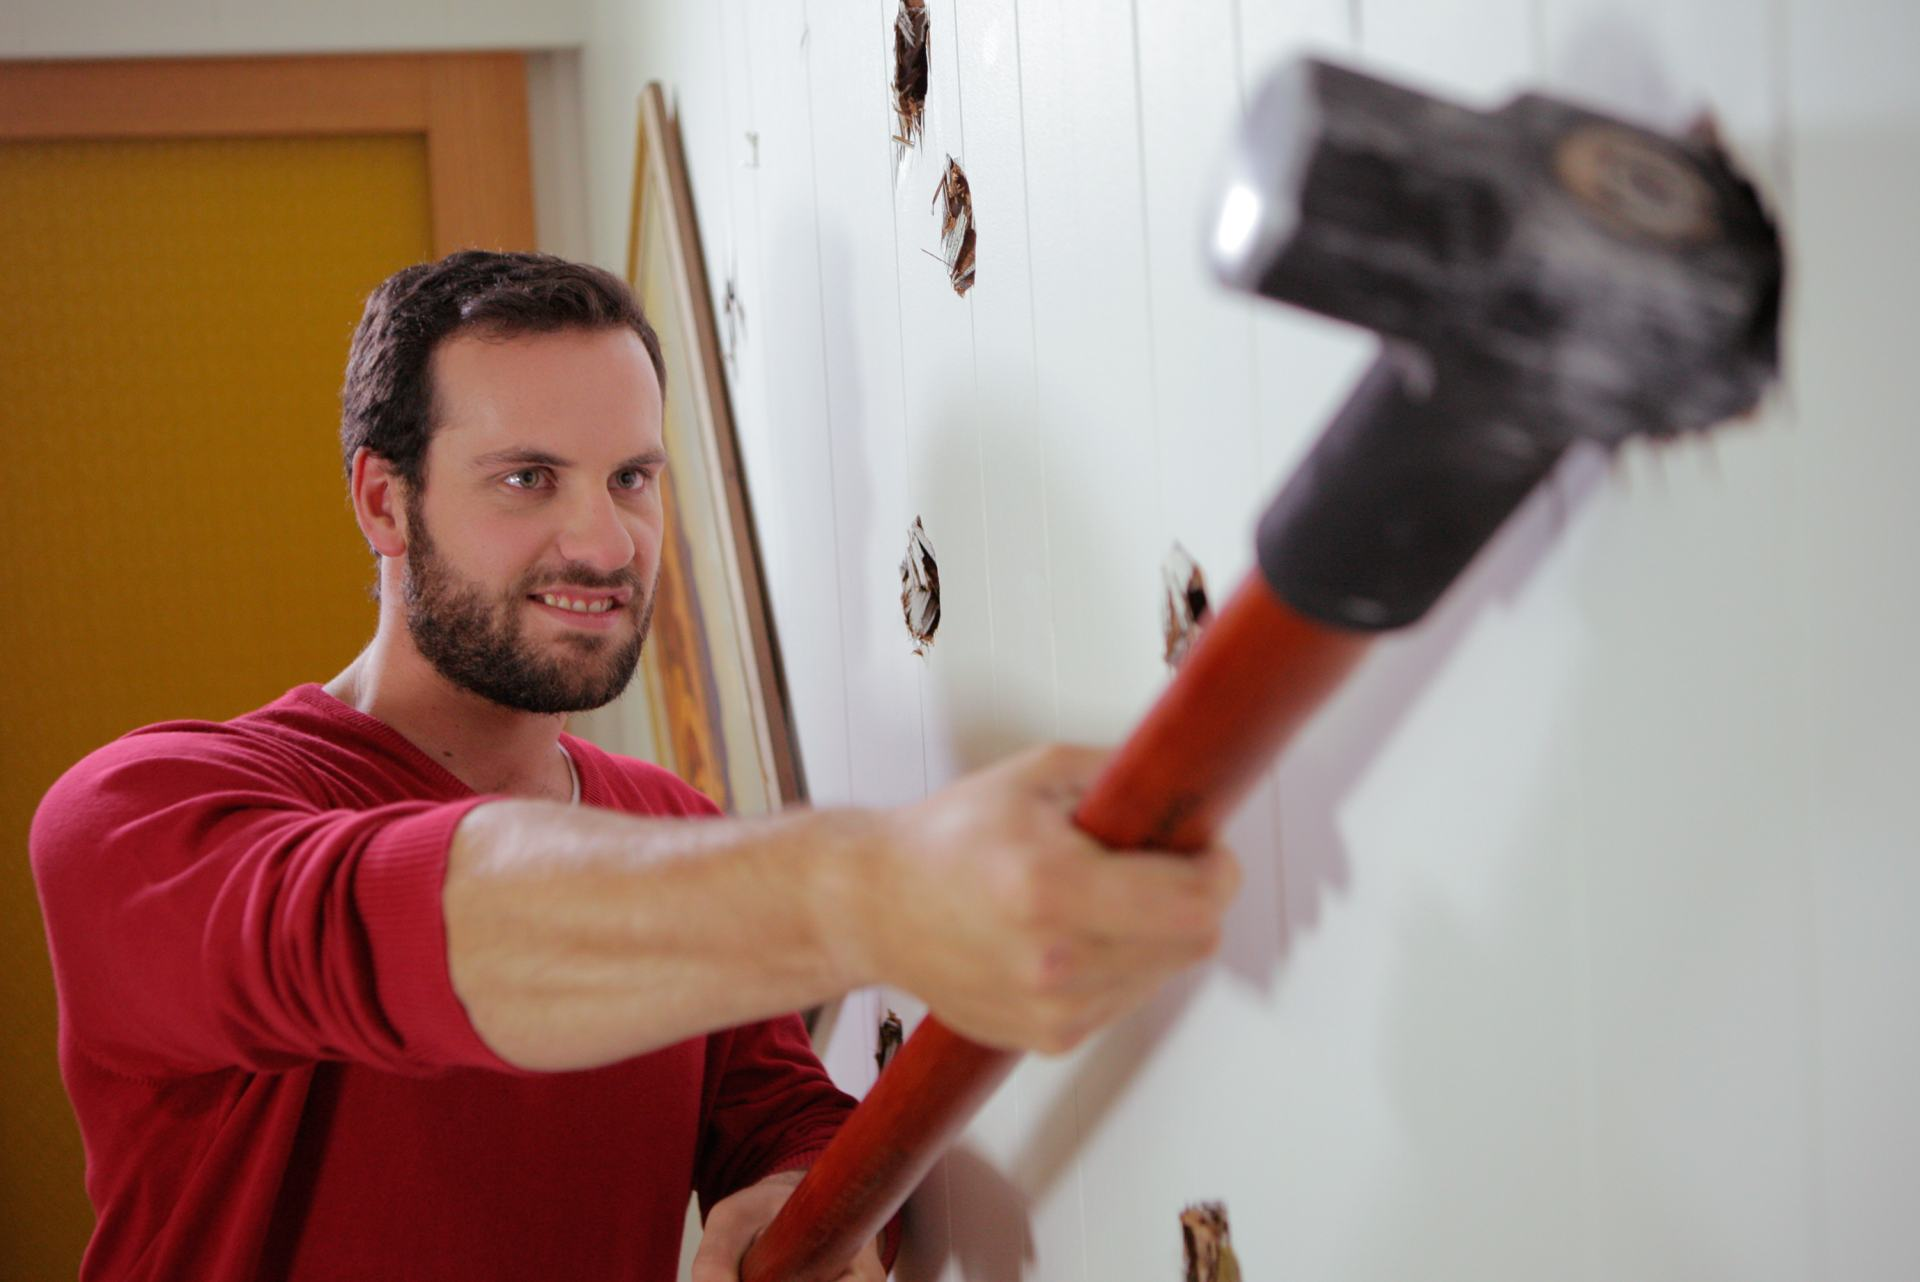 Guy with a sledgehammer